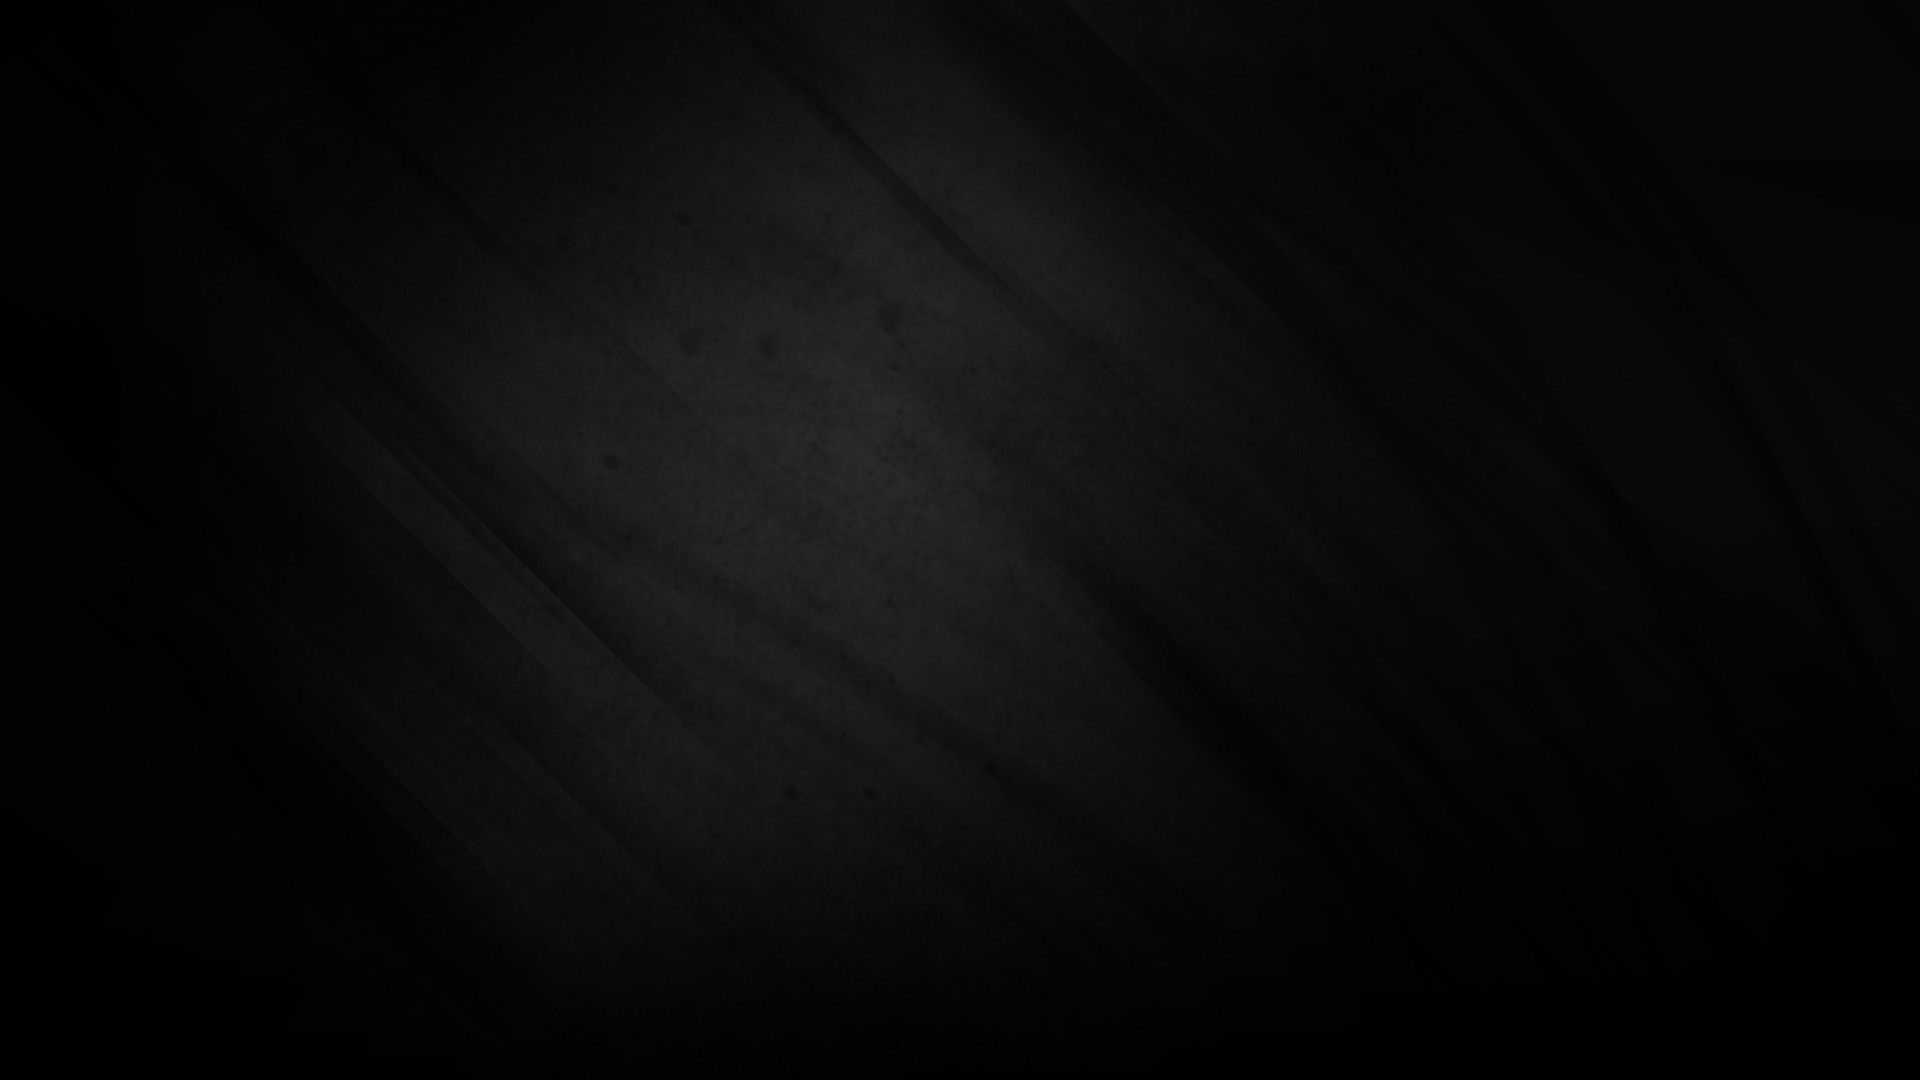 Solid Black 4k Wallpapers Top Free Solid Black 4k Backgrounds